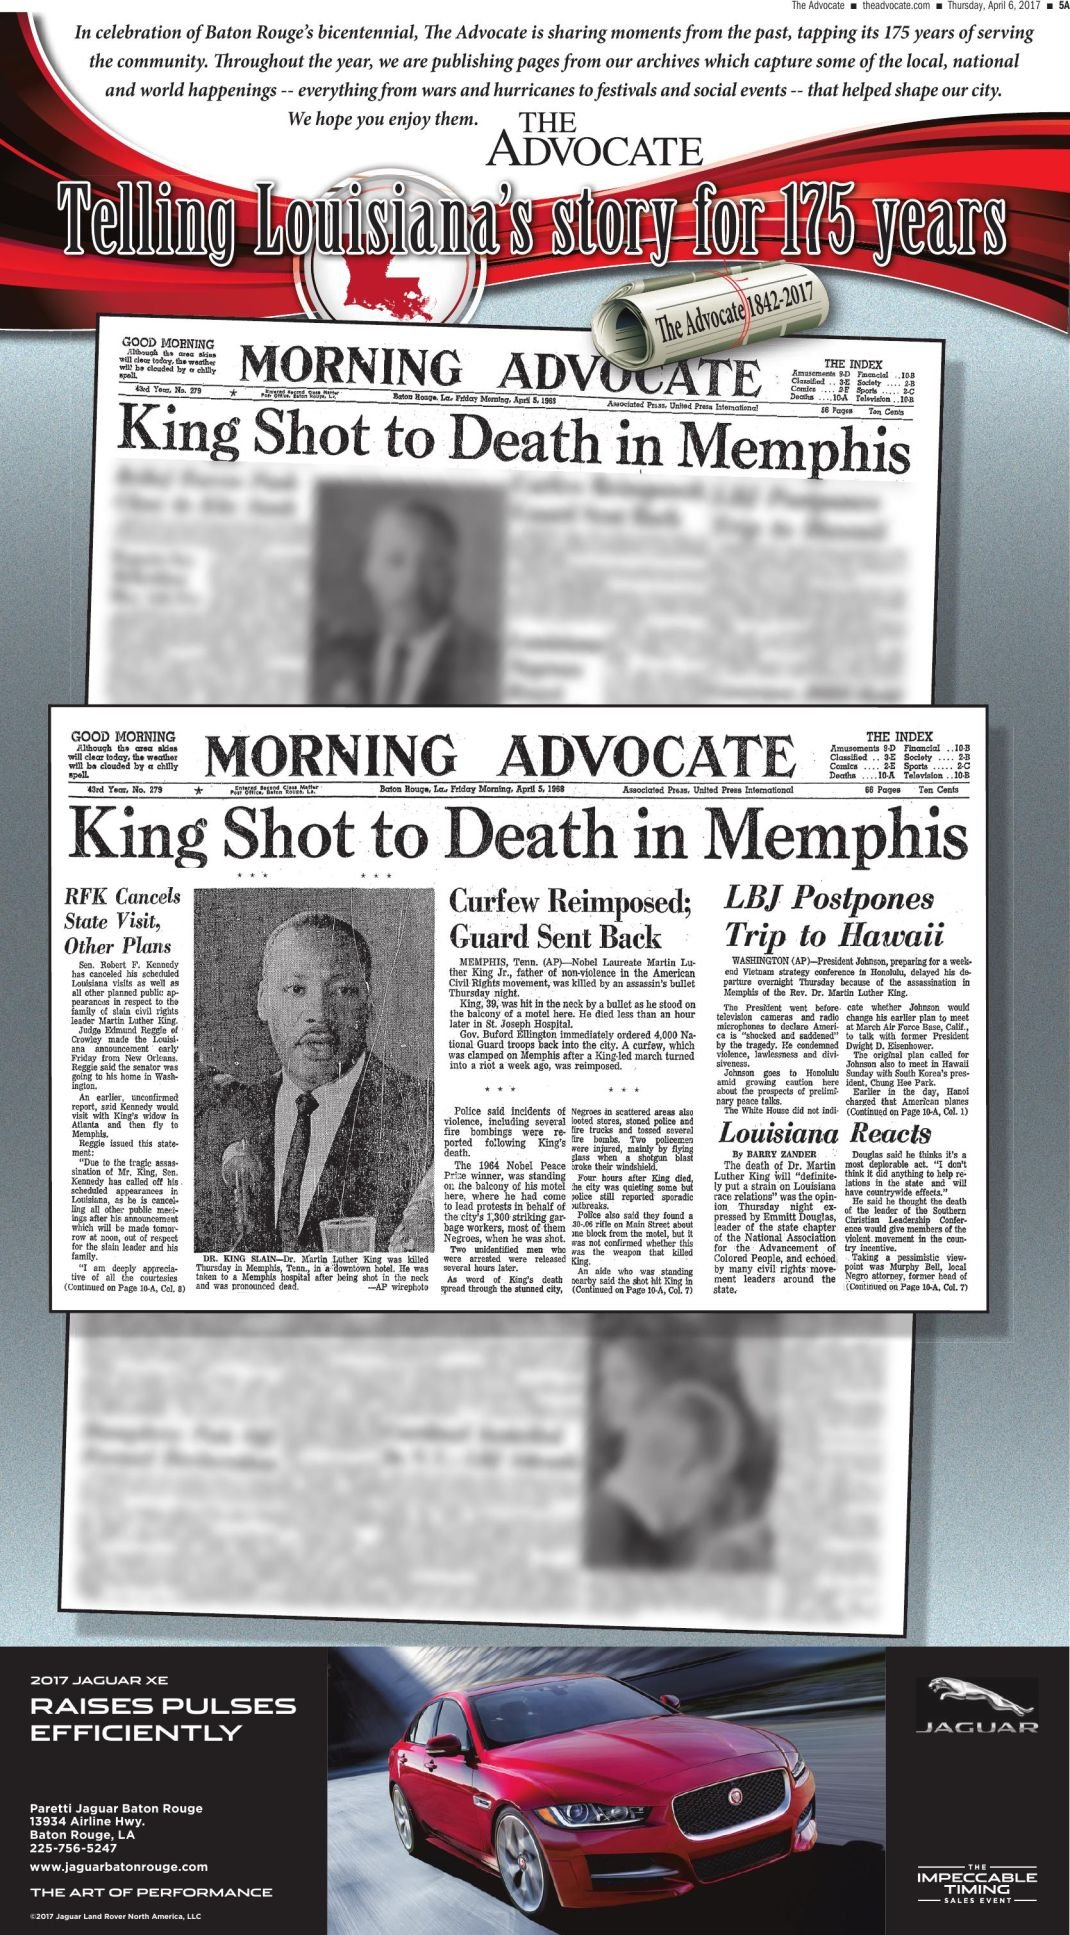 King Shot to Death in Memphis